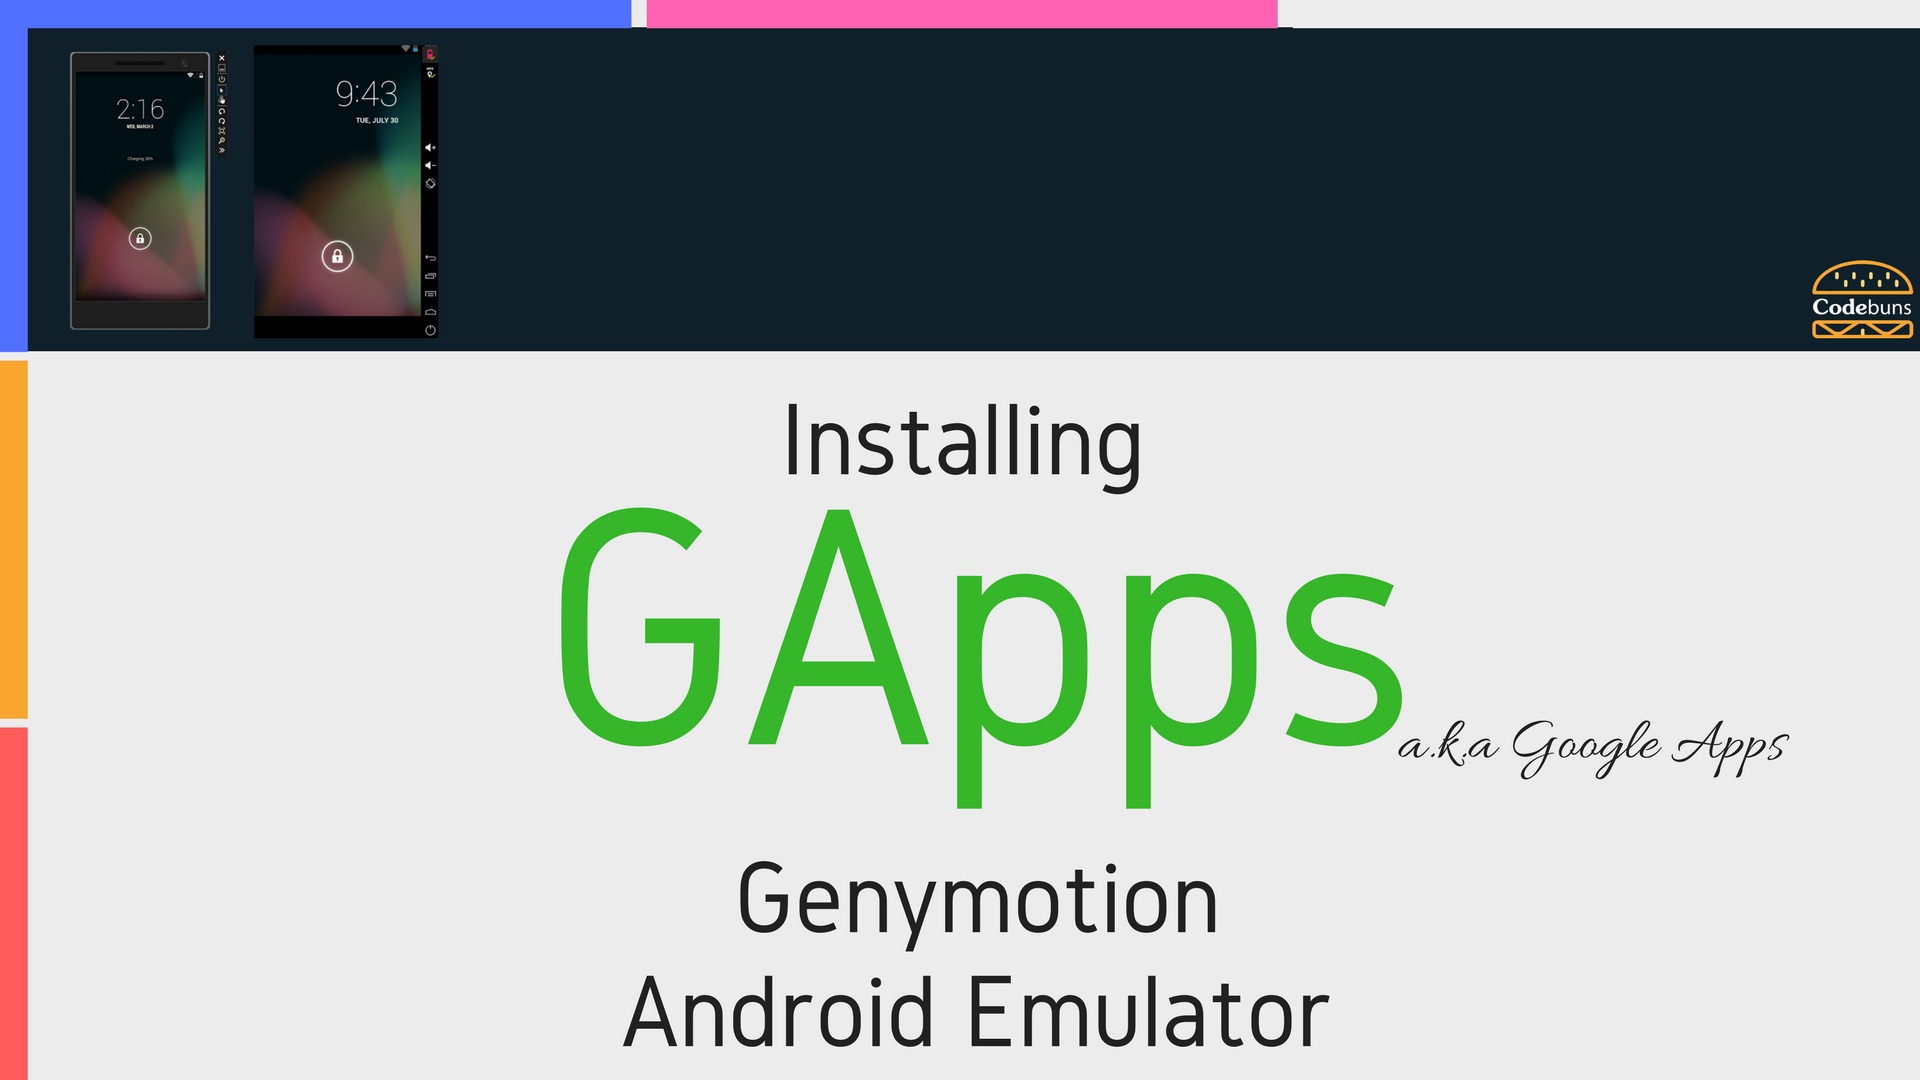 installing google apps on genymotion